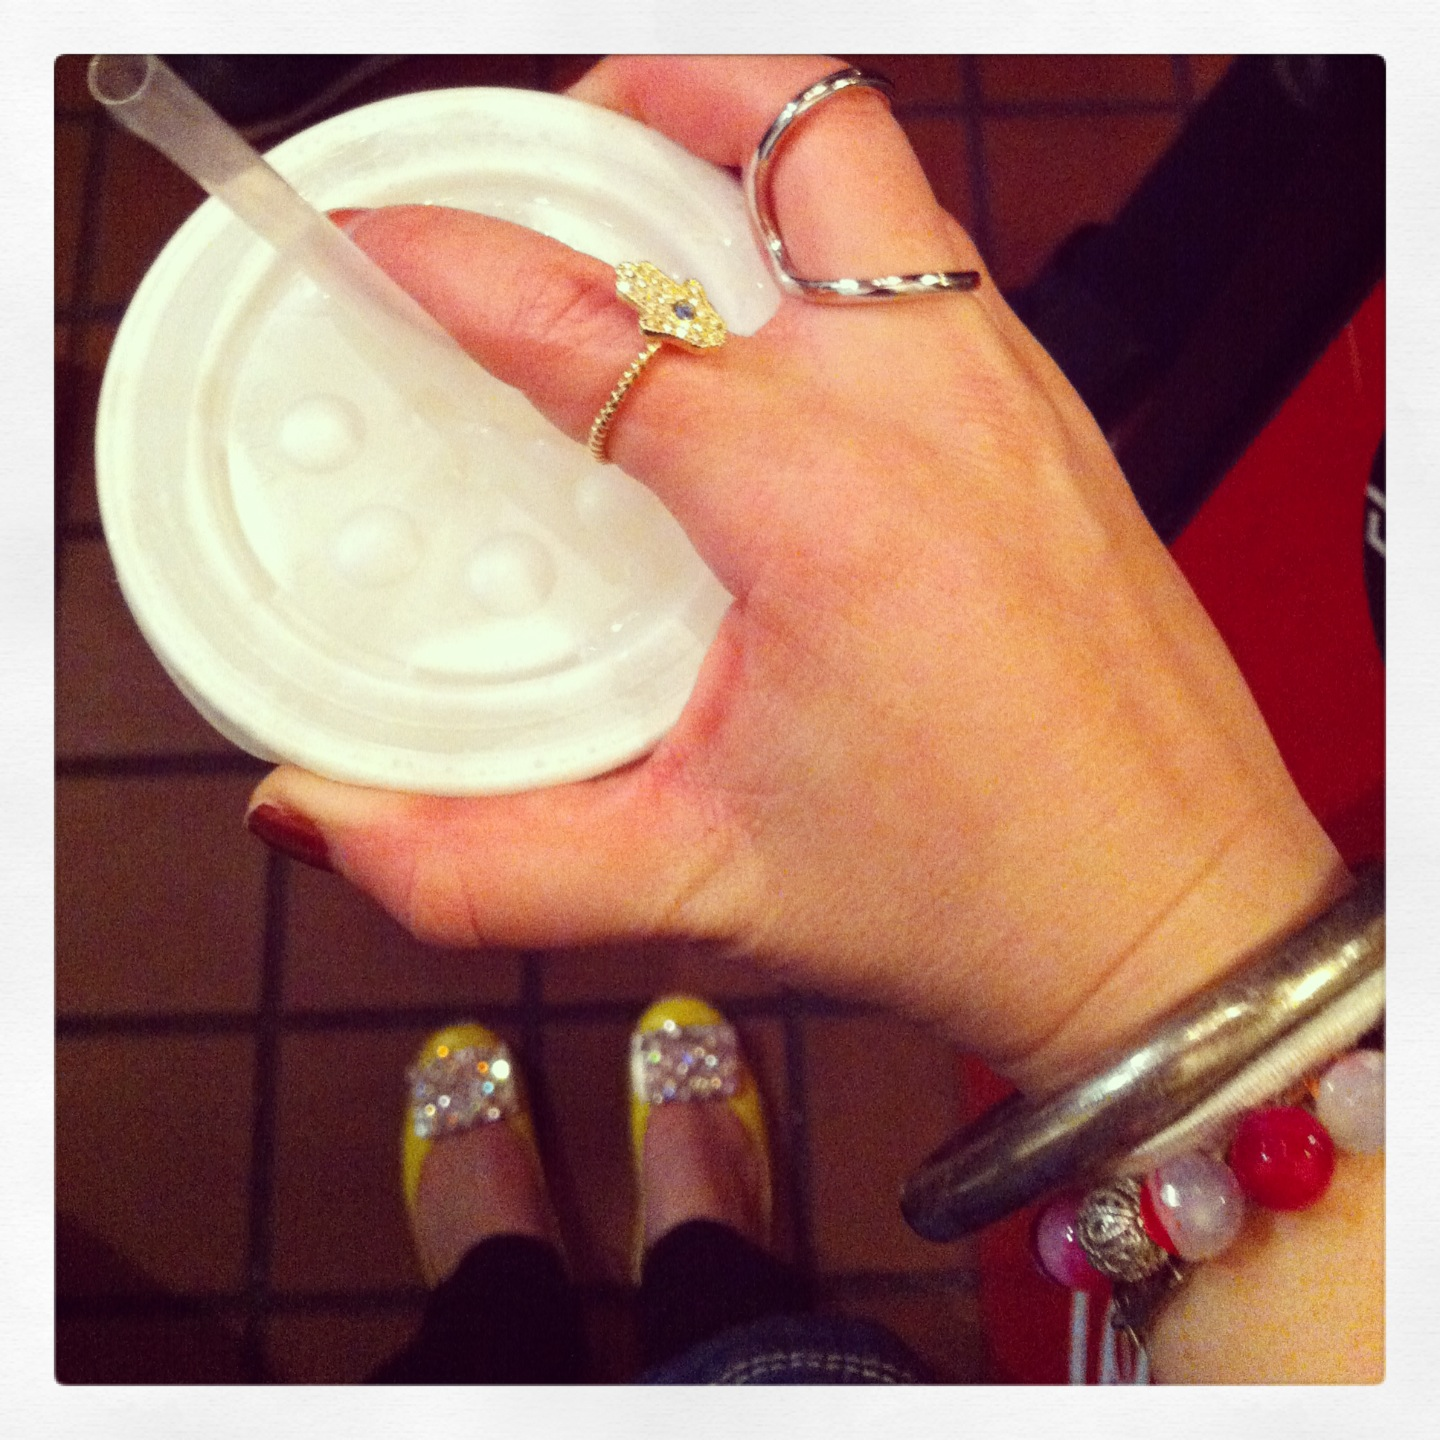 my new fav rings, a surprise present in Soho, and my favorite egg cream in the world at Gem Spa, St Marks Place